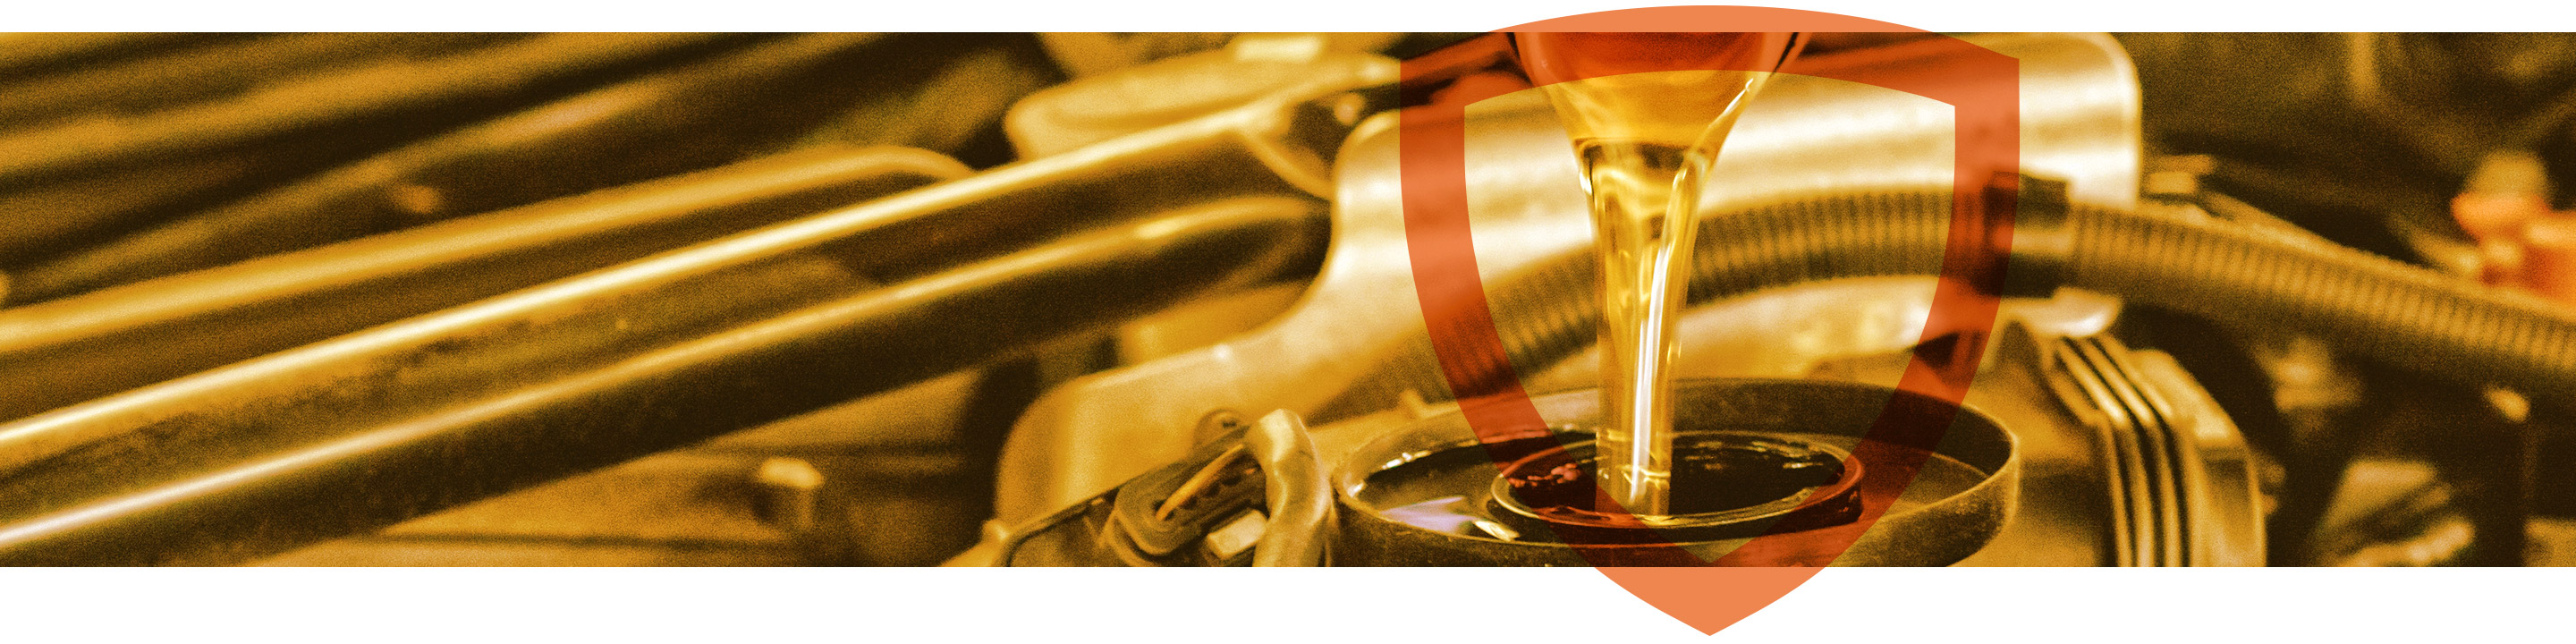 Heavy-Duty and Natural Gas Engine Oils Product Header Image